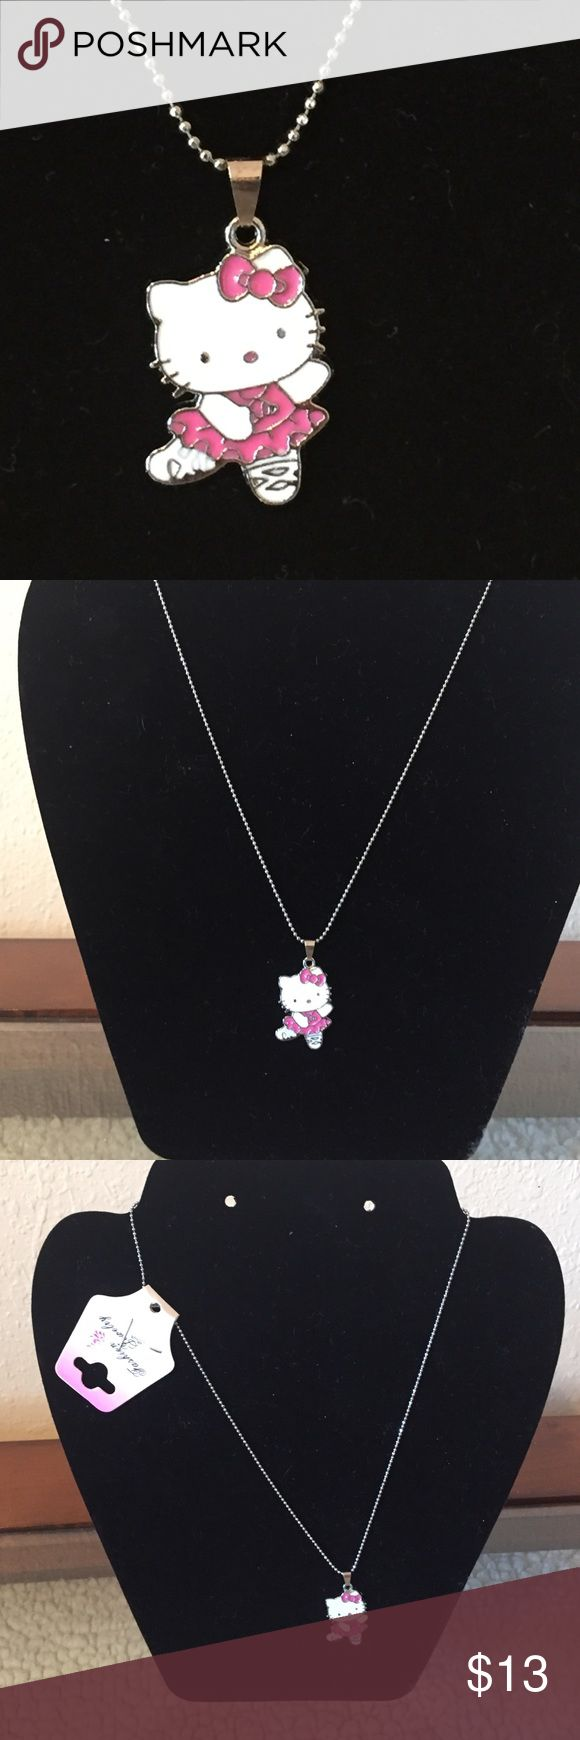 """Hello Kitty necklace New in package. Chain 8"""" silver Accessories Jewelry"""